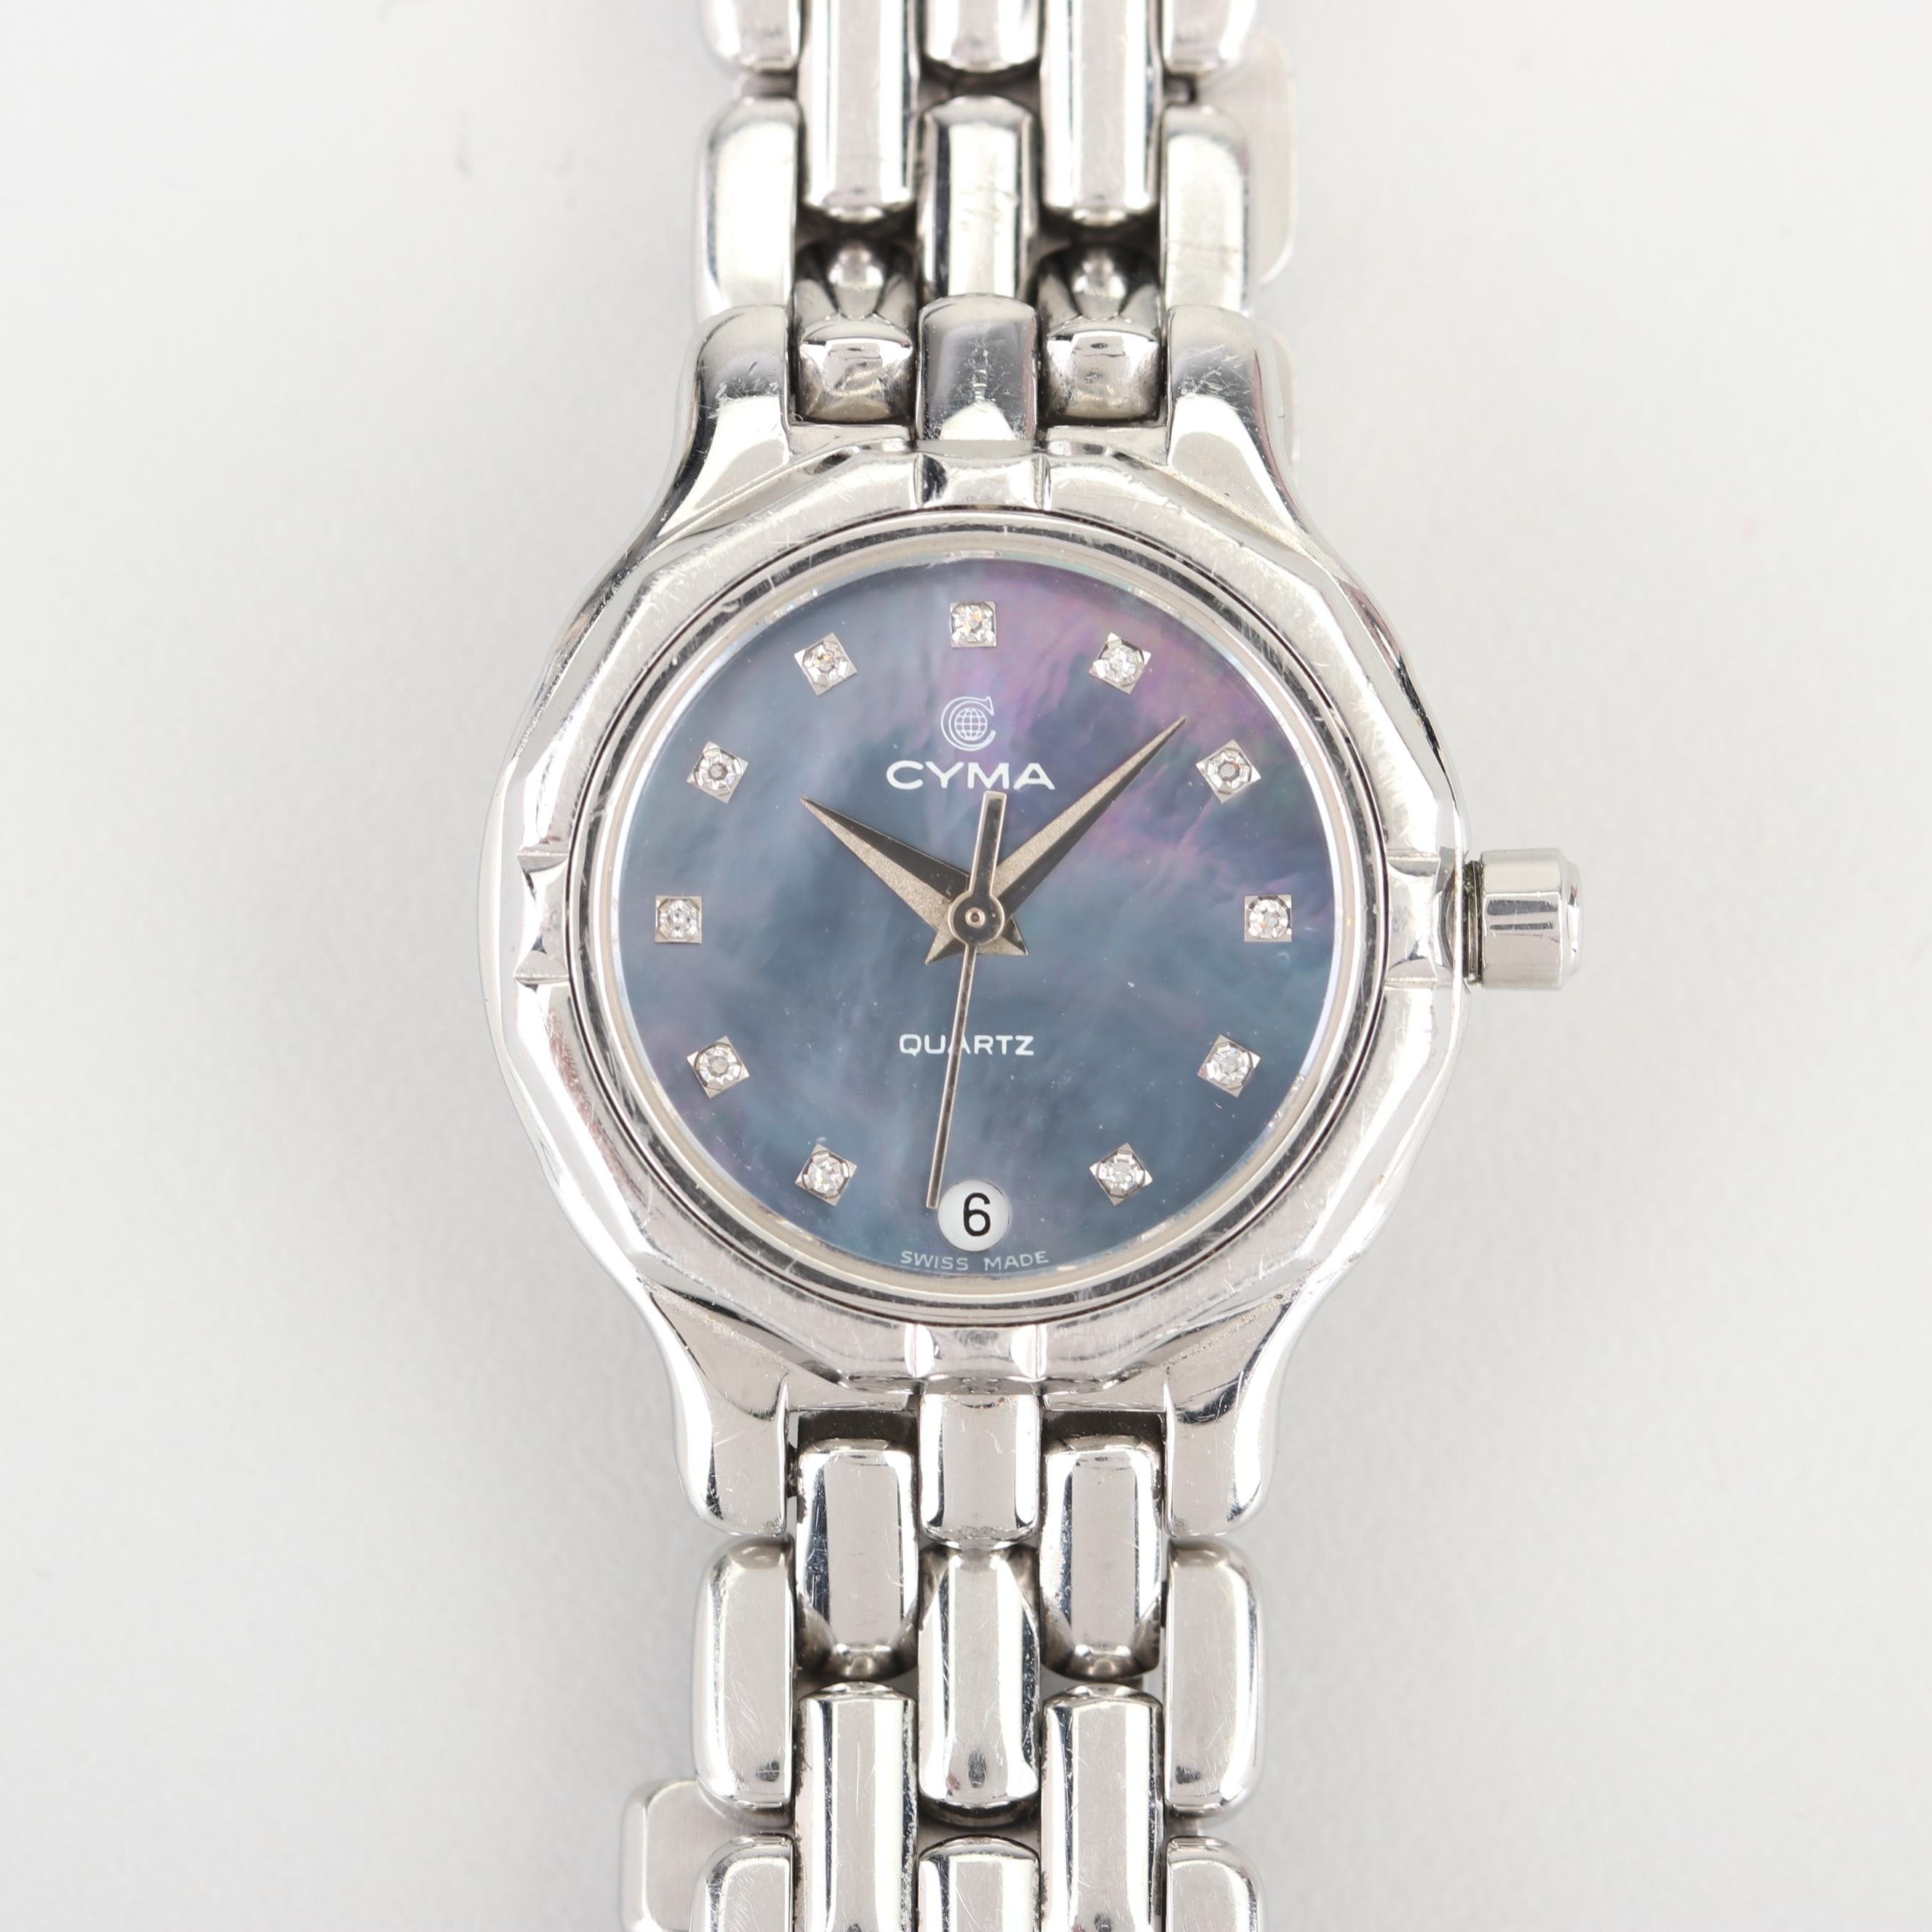 Cyma Stainless Steel Wristwatch with Diamond and Mother of Pearl Dial